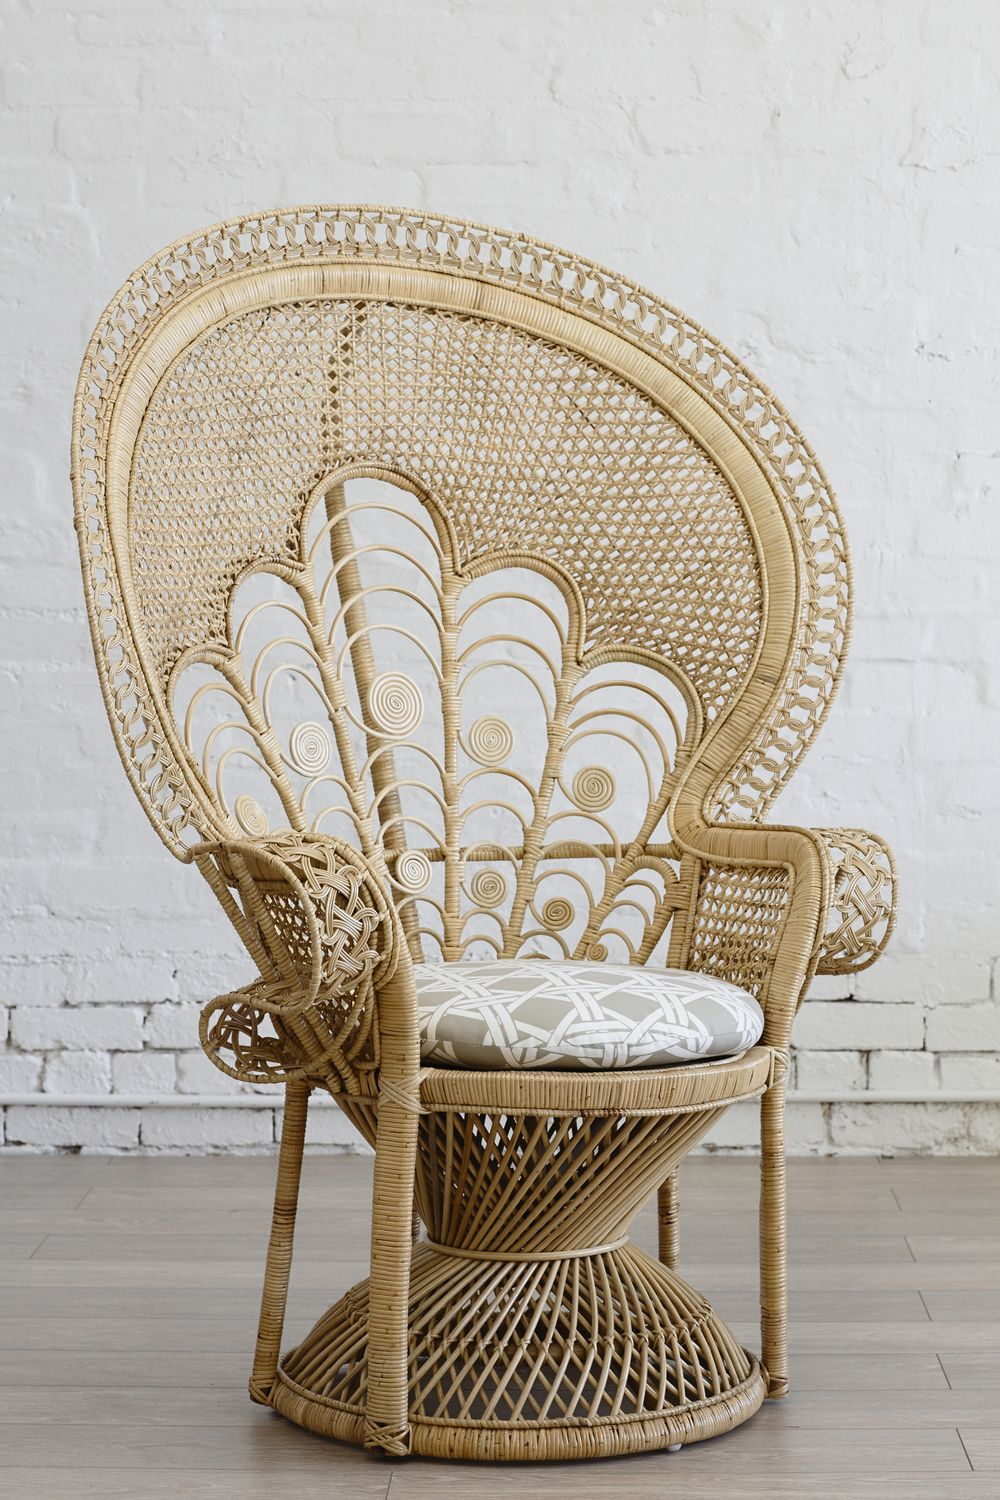 Rattan Peacock Chair Black Covers For Folding Chairs I Had One Like This In My Room When Was Younger D Love To Find Daughter S Bedroom